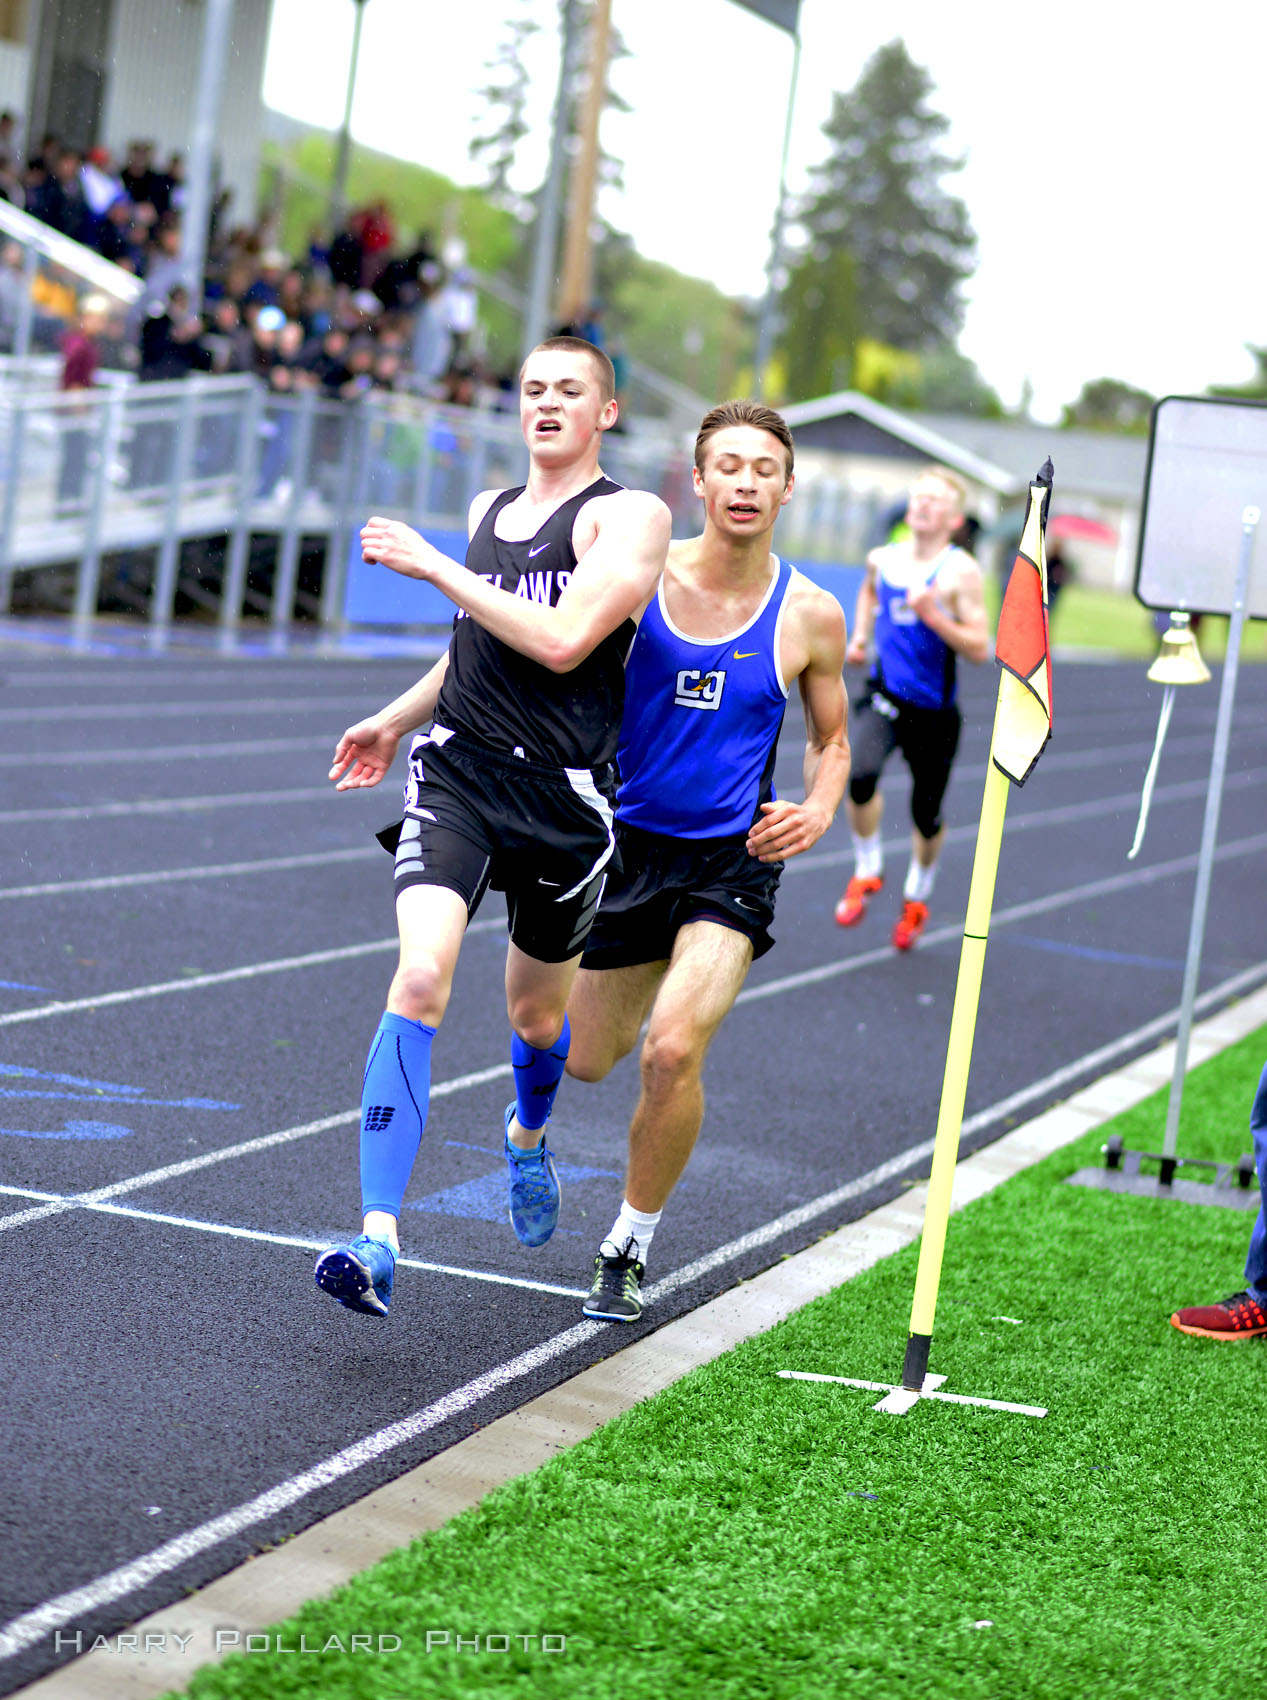 2017-05-11-sky-em-district-track-meet-08